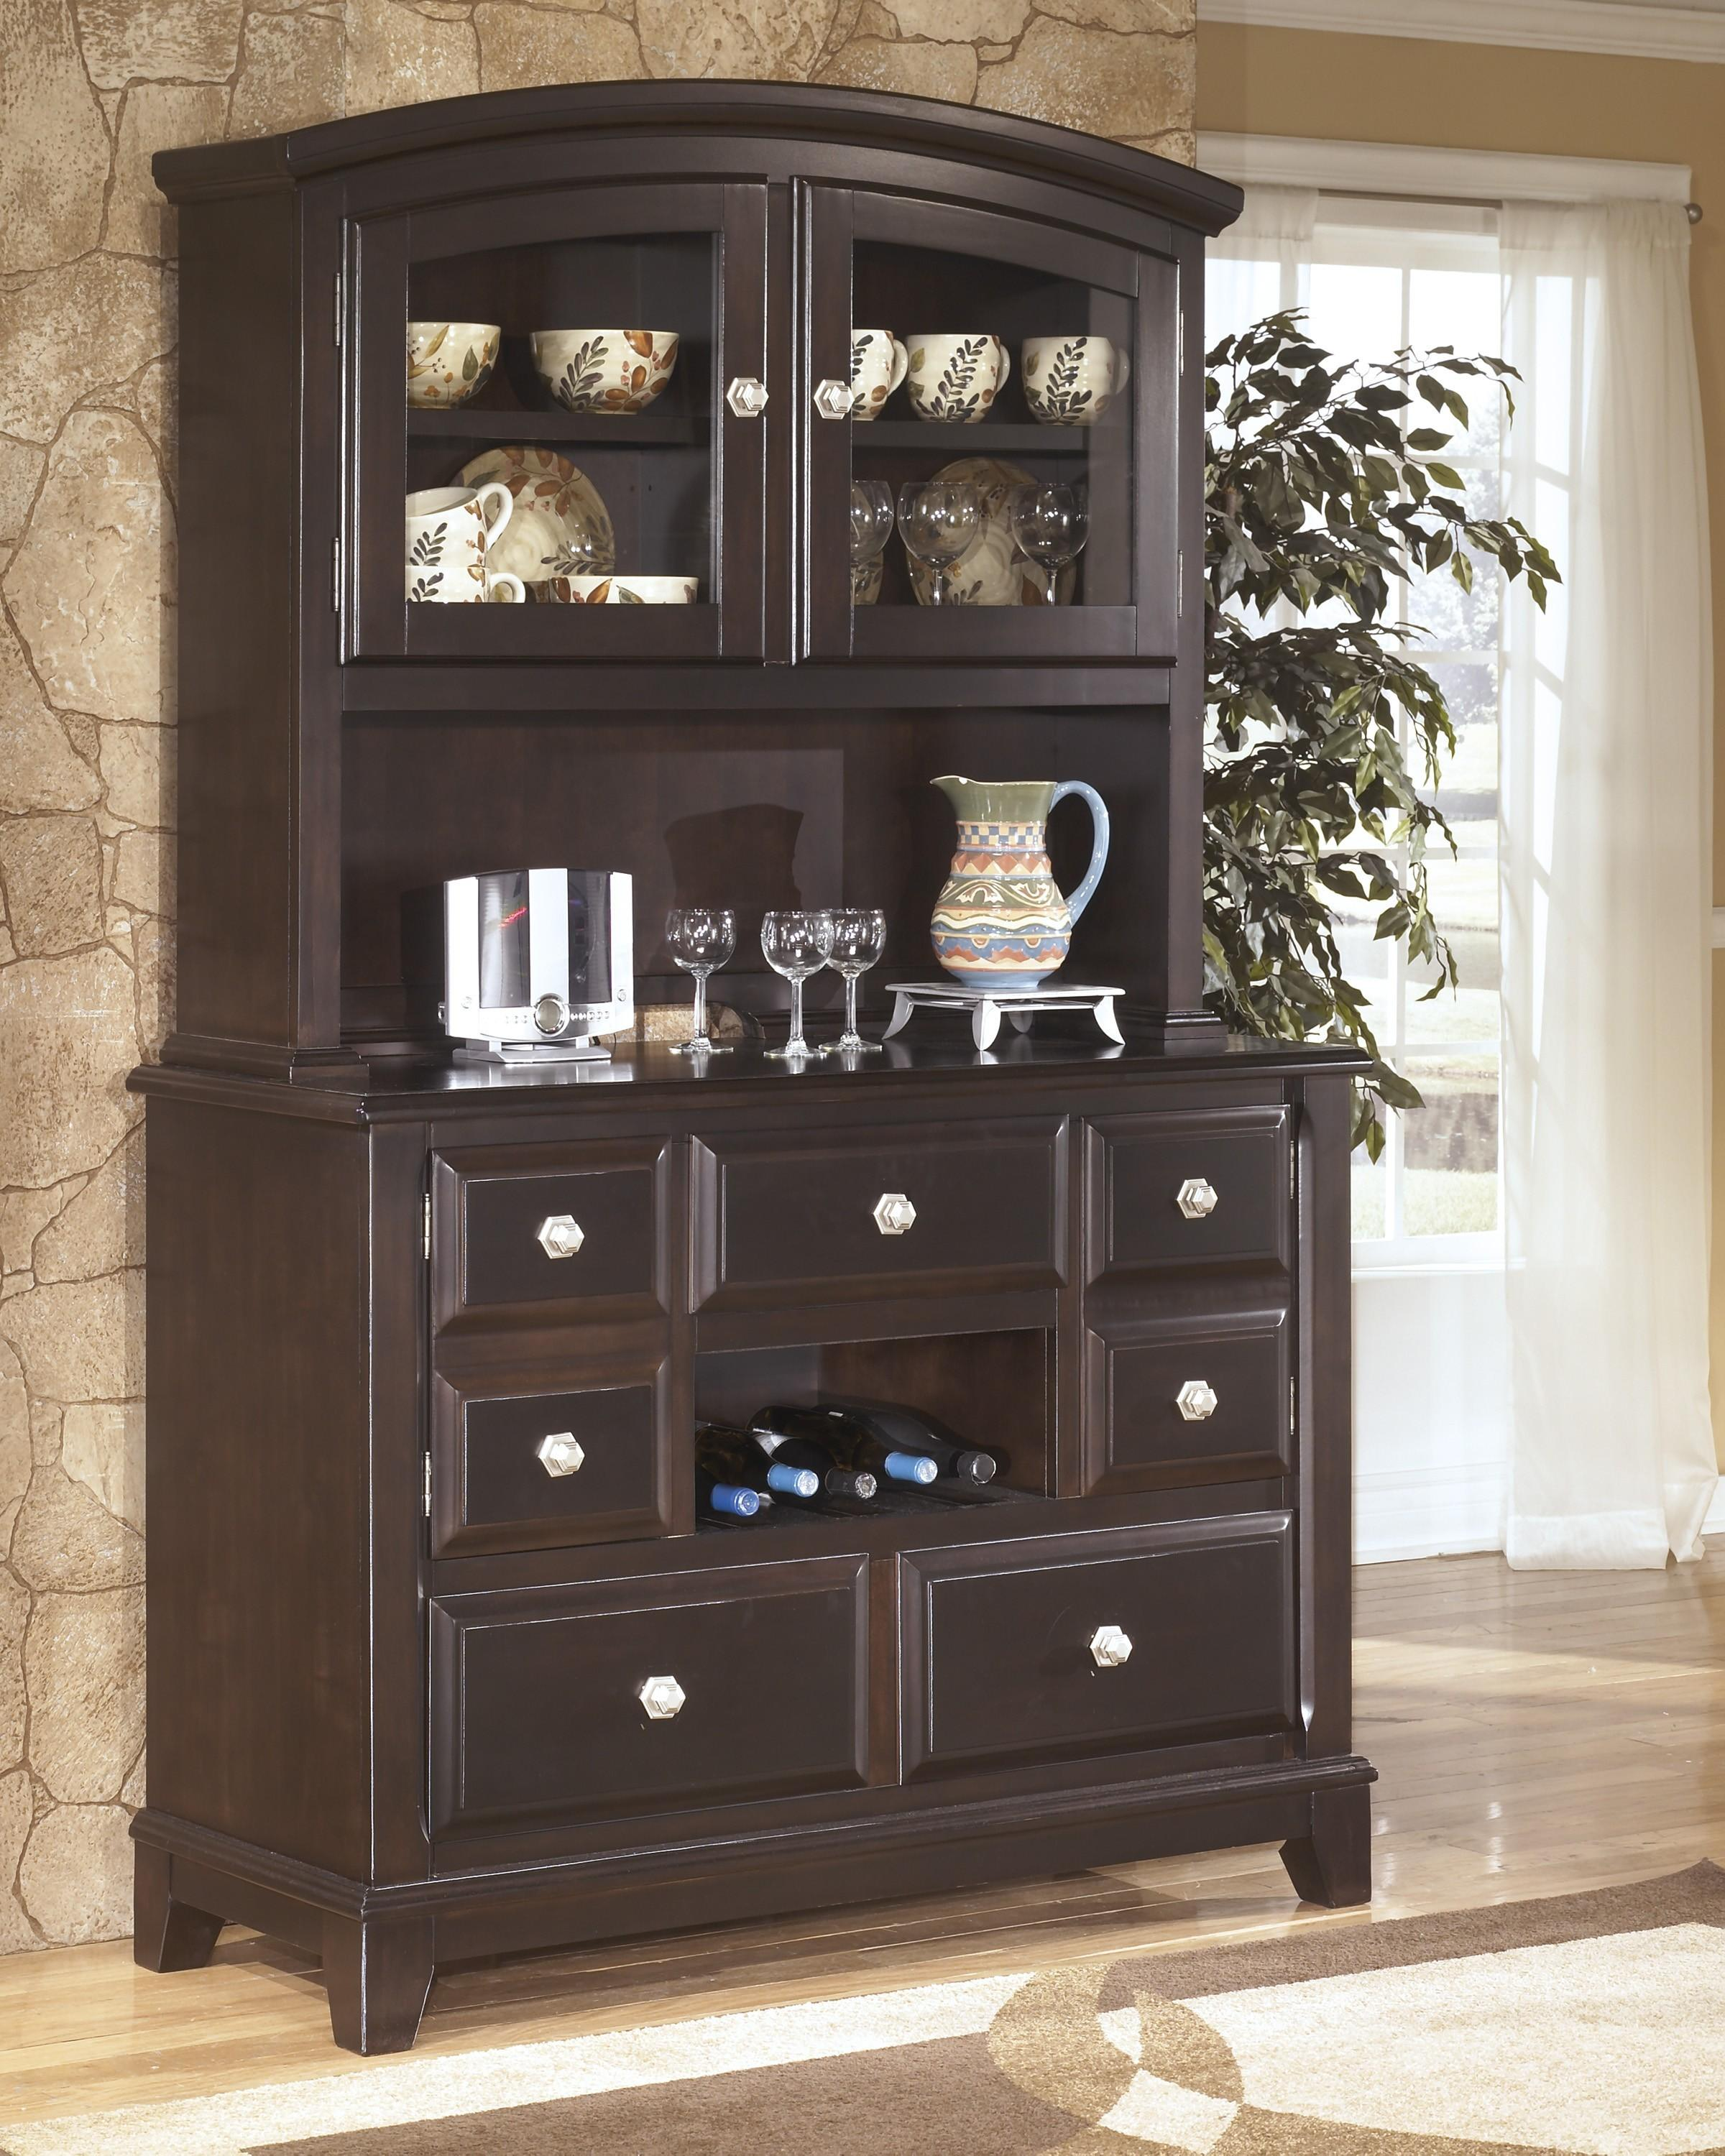 Ridgley Contemporary Style Dark Brown Finish Dining Room